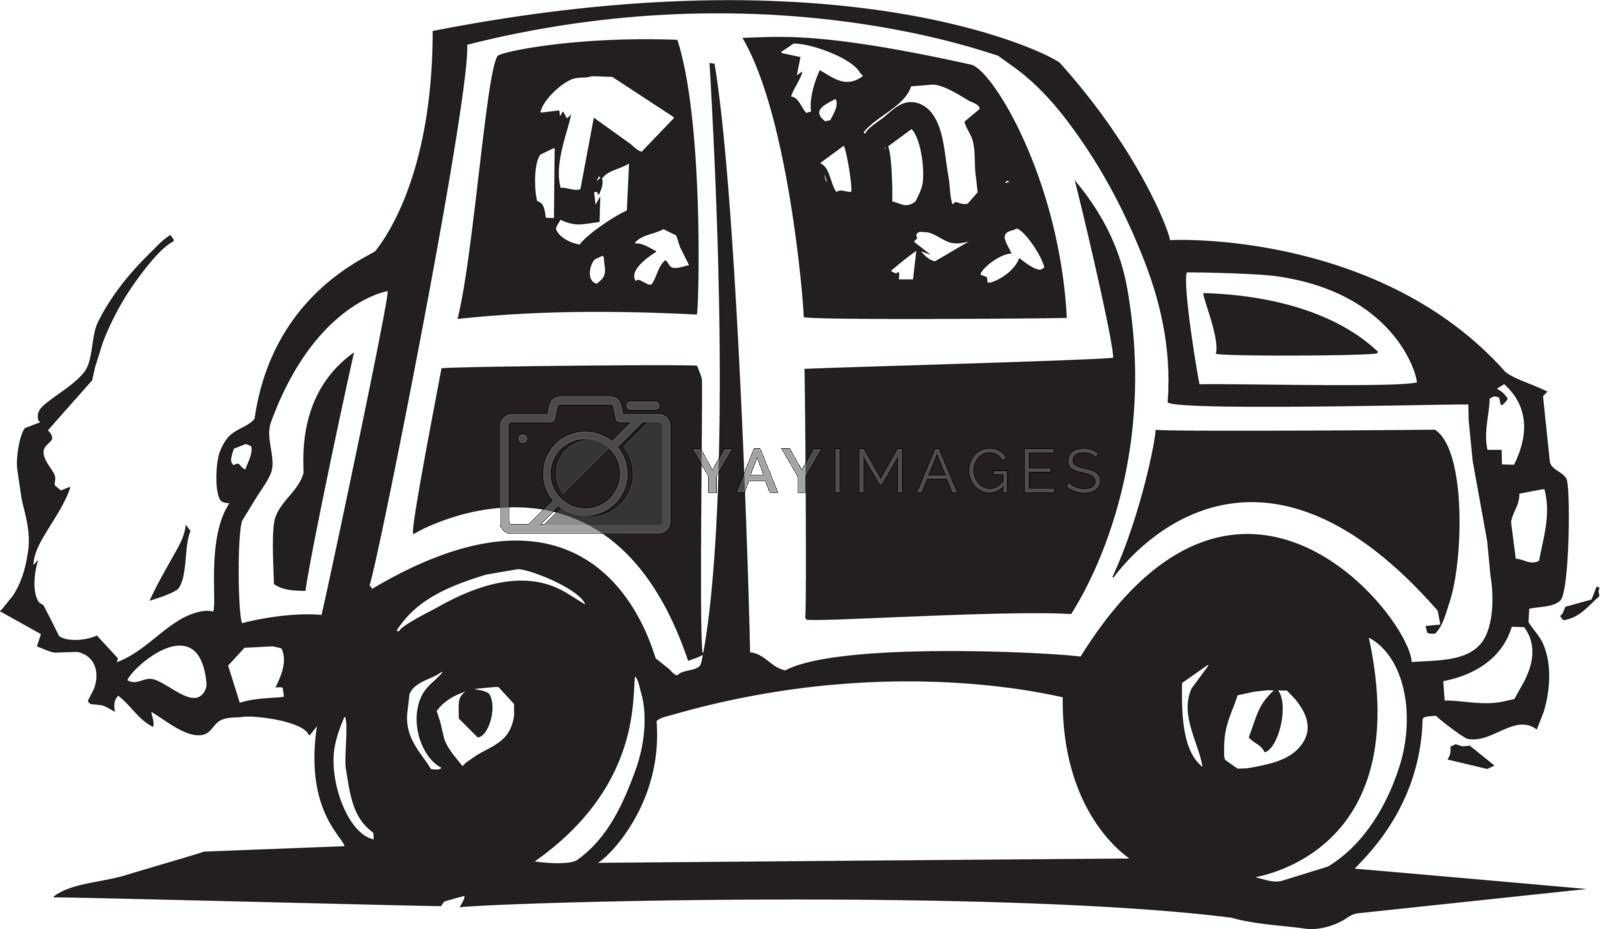 Woodcut style small car with people inside.